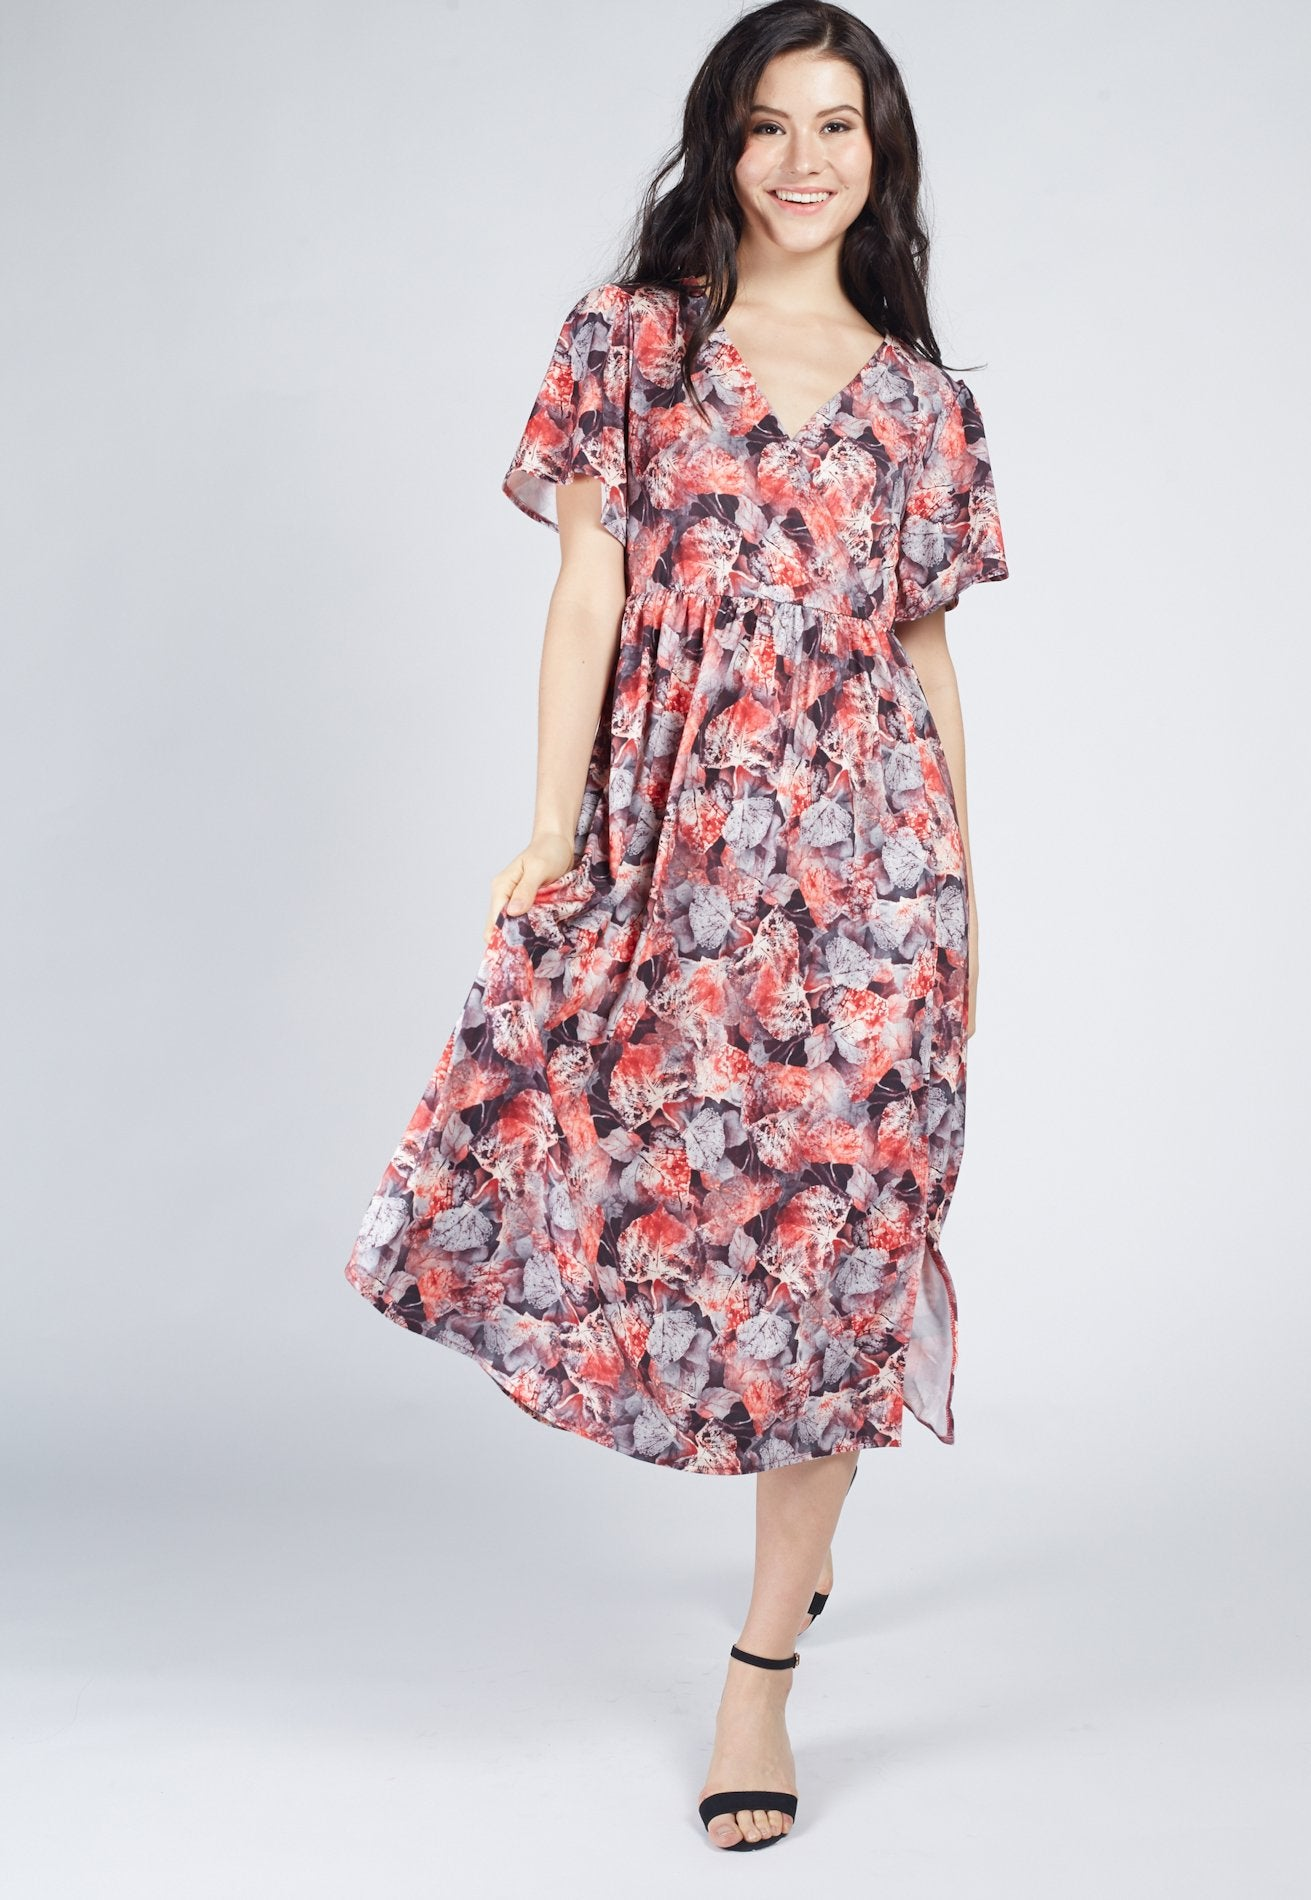 96df9d4acf5 SALE Floral Style Nursing Dress by Jump Eat Cry - Maternity and nursing wear